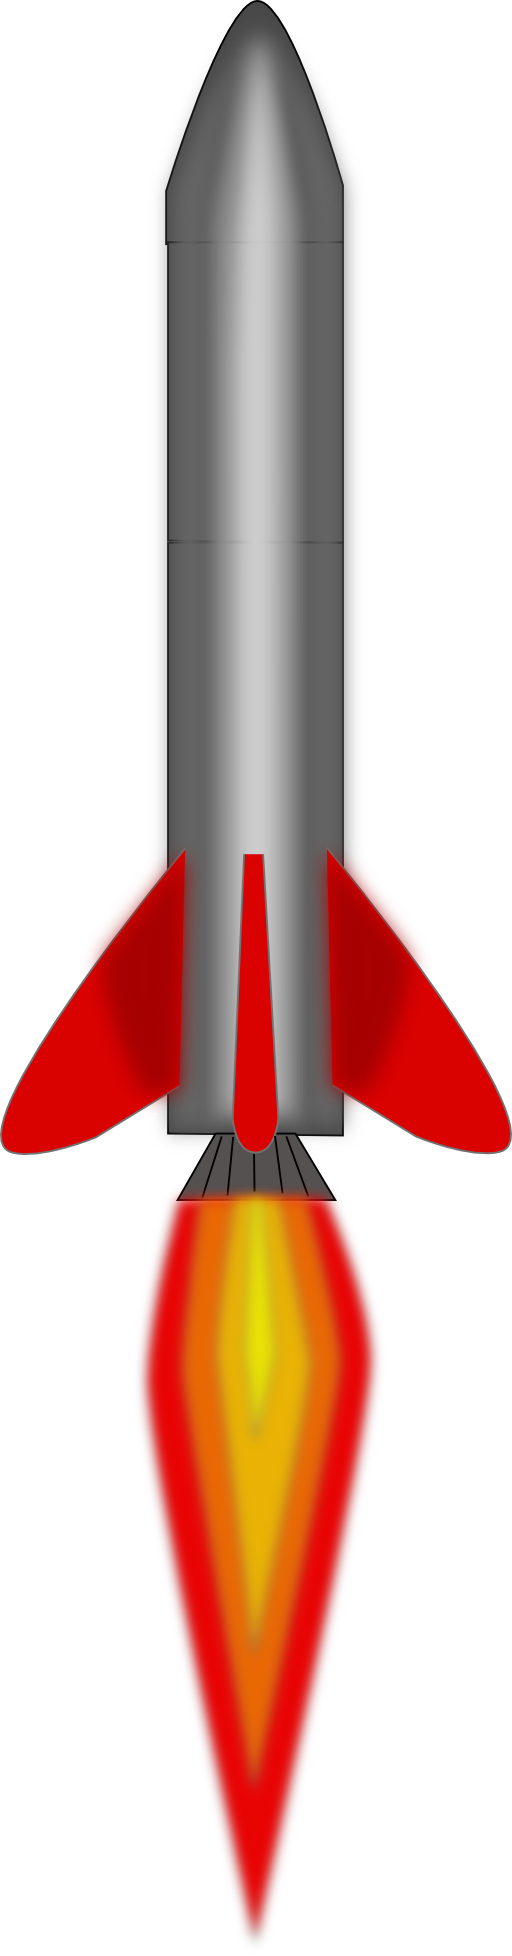 Rocket launch clip art.